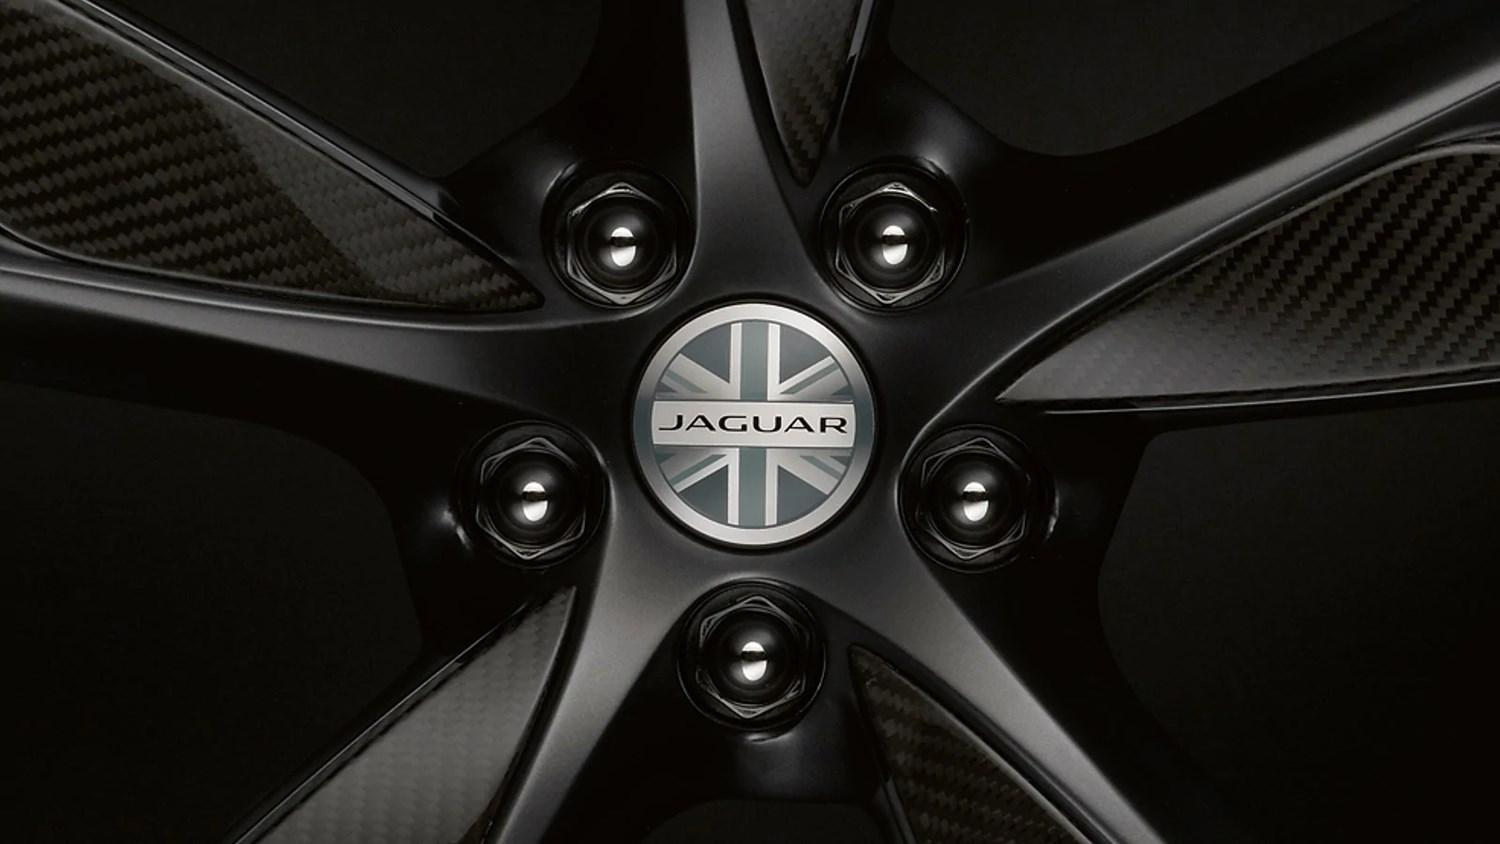 Close up of Jaguar alloy wheel with union jack on it